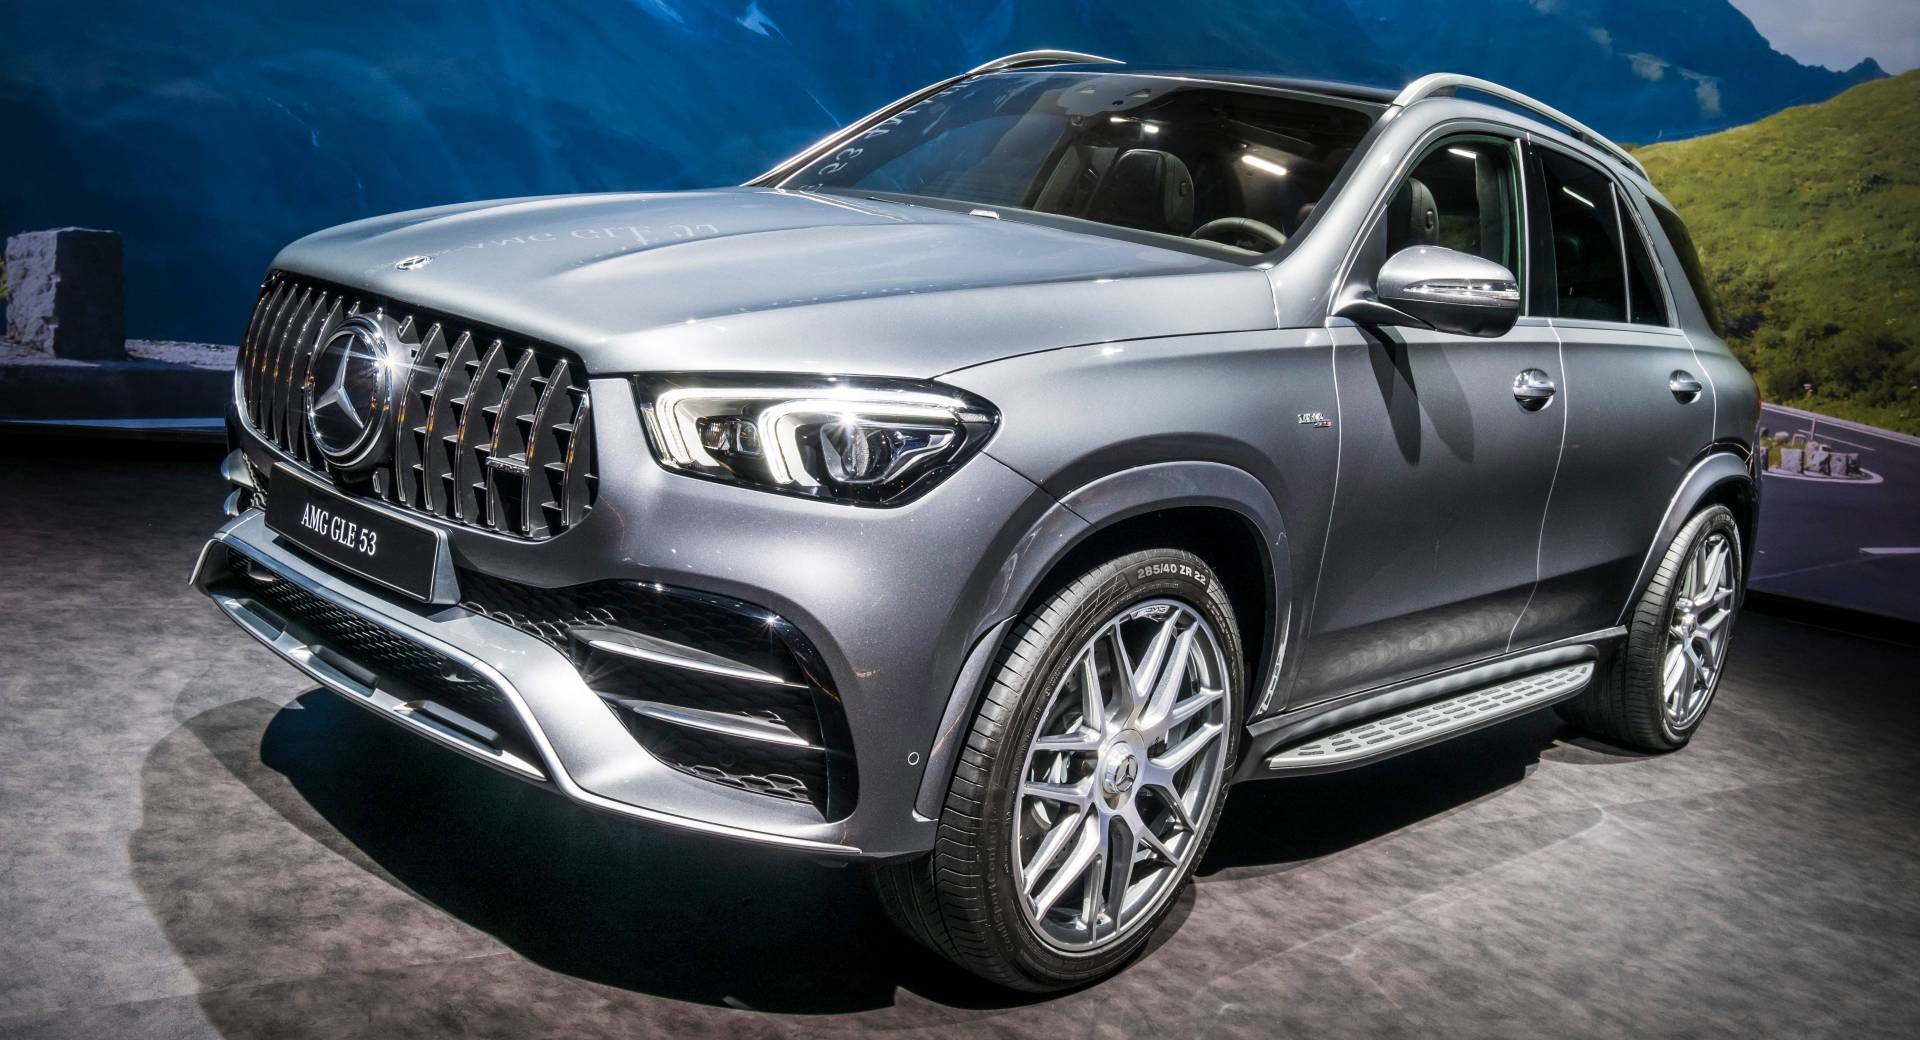 2020 Mercedes-AMG GLE 53 Launches In Europe At Under $95k ...